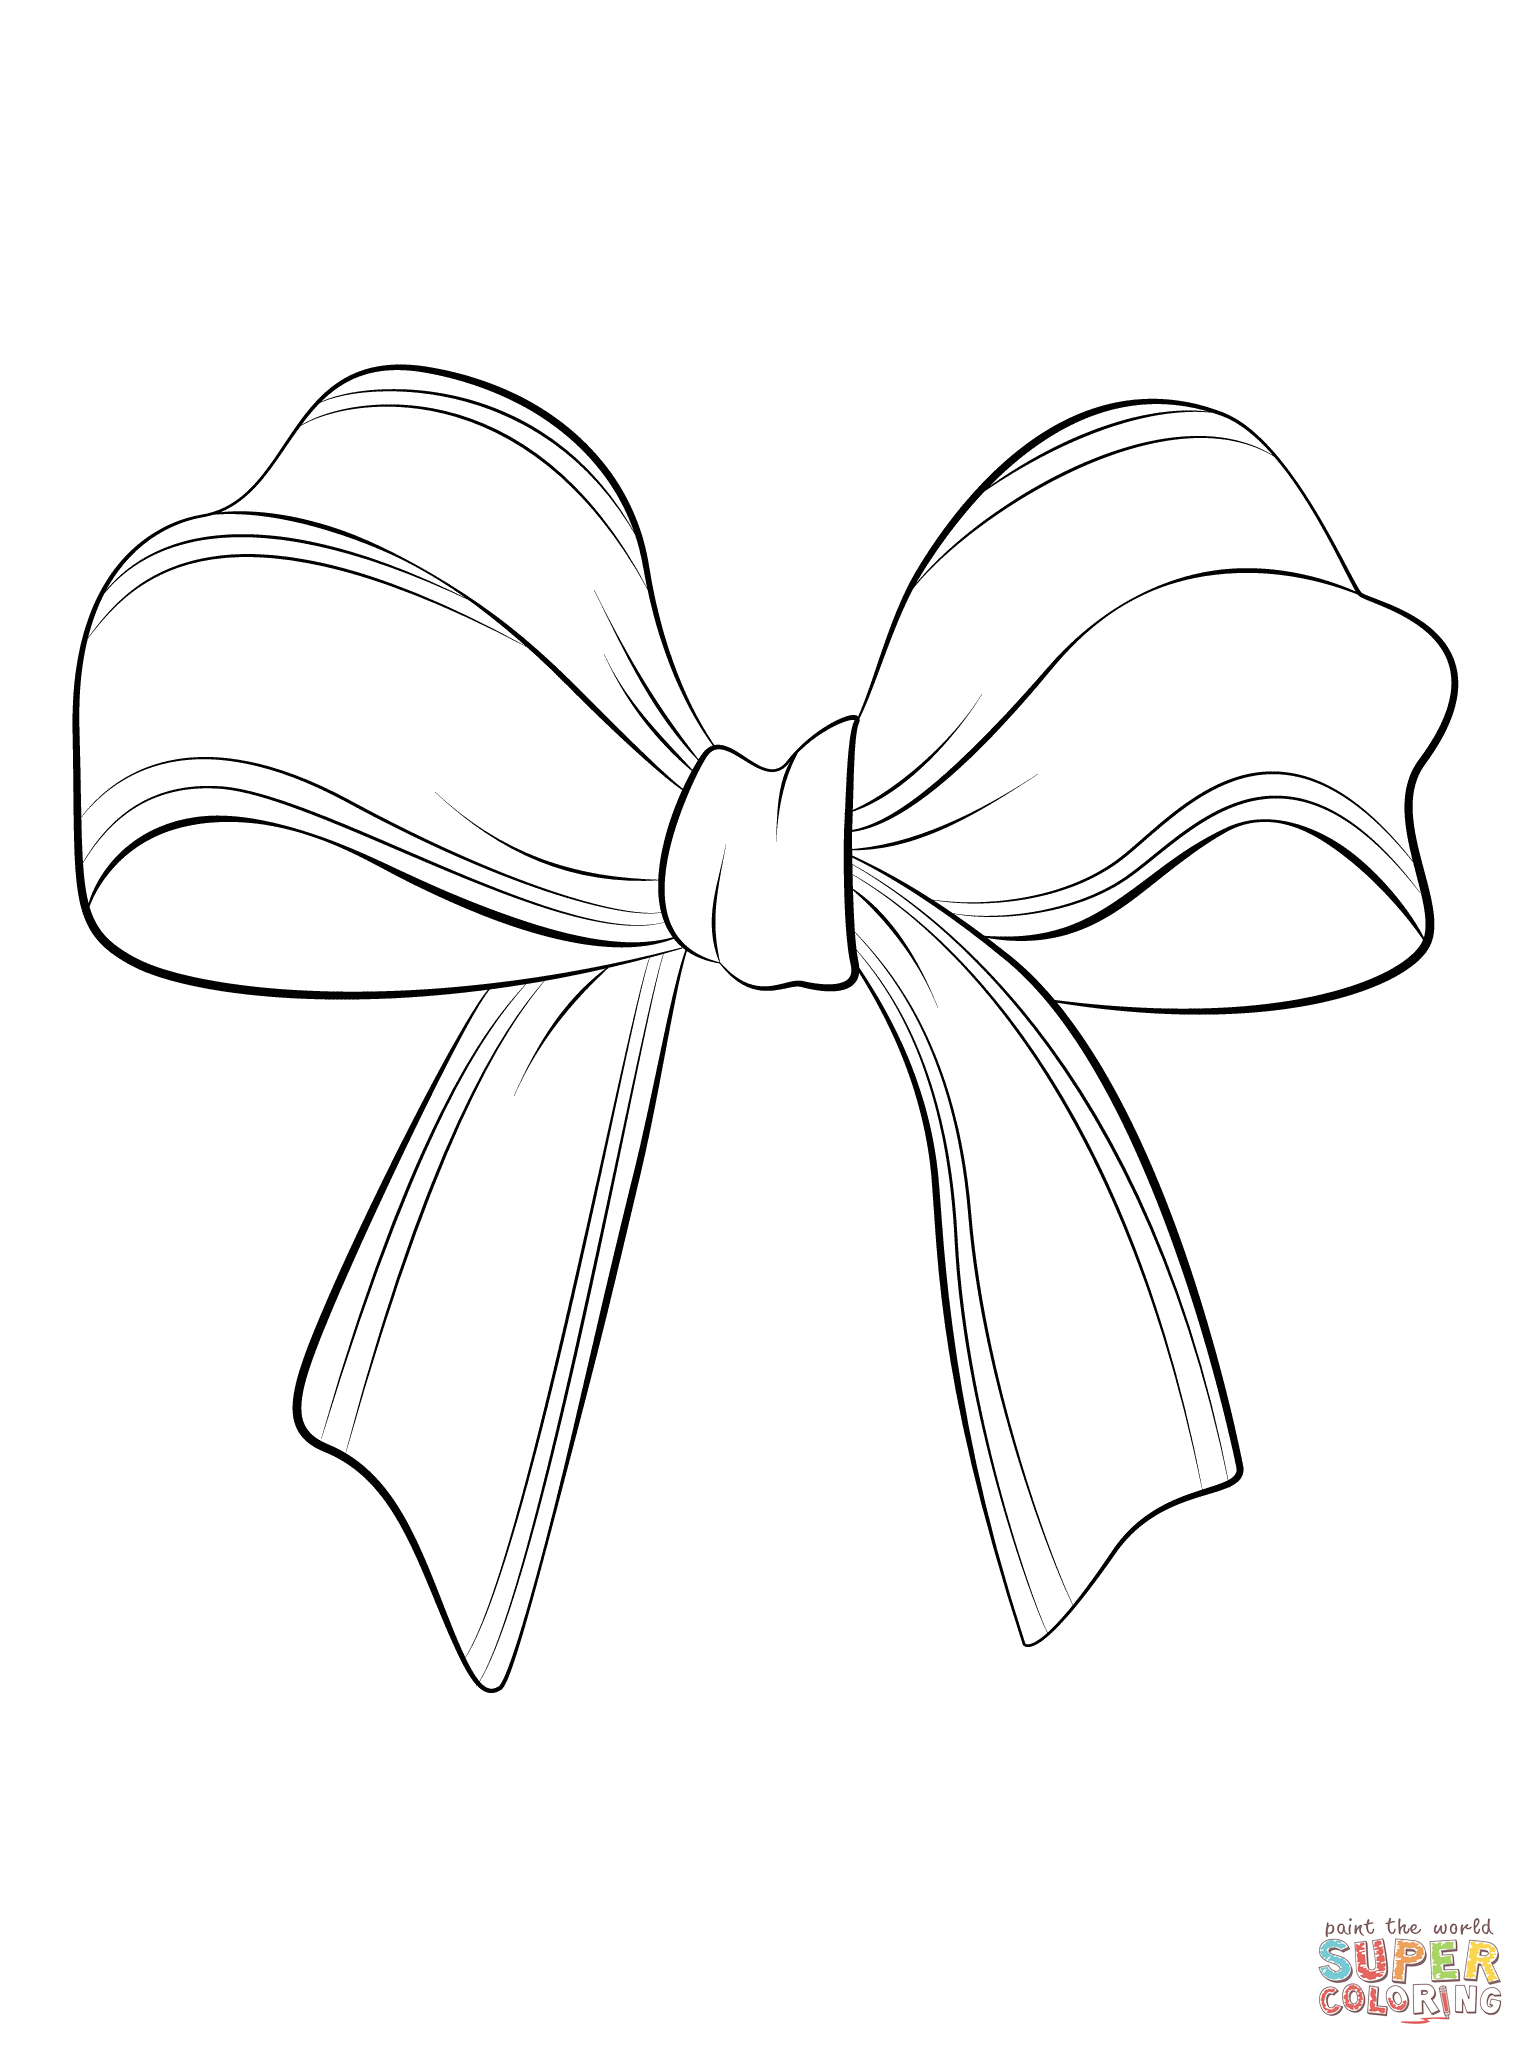 Christmas Bow Coloring Page Free Printable Coloring Pages Bow Drawing Free Printable Coloring Pages Coloring Pages